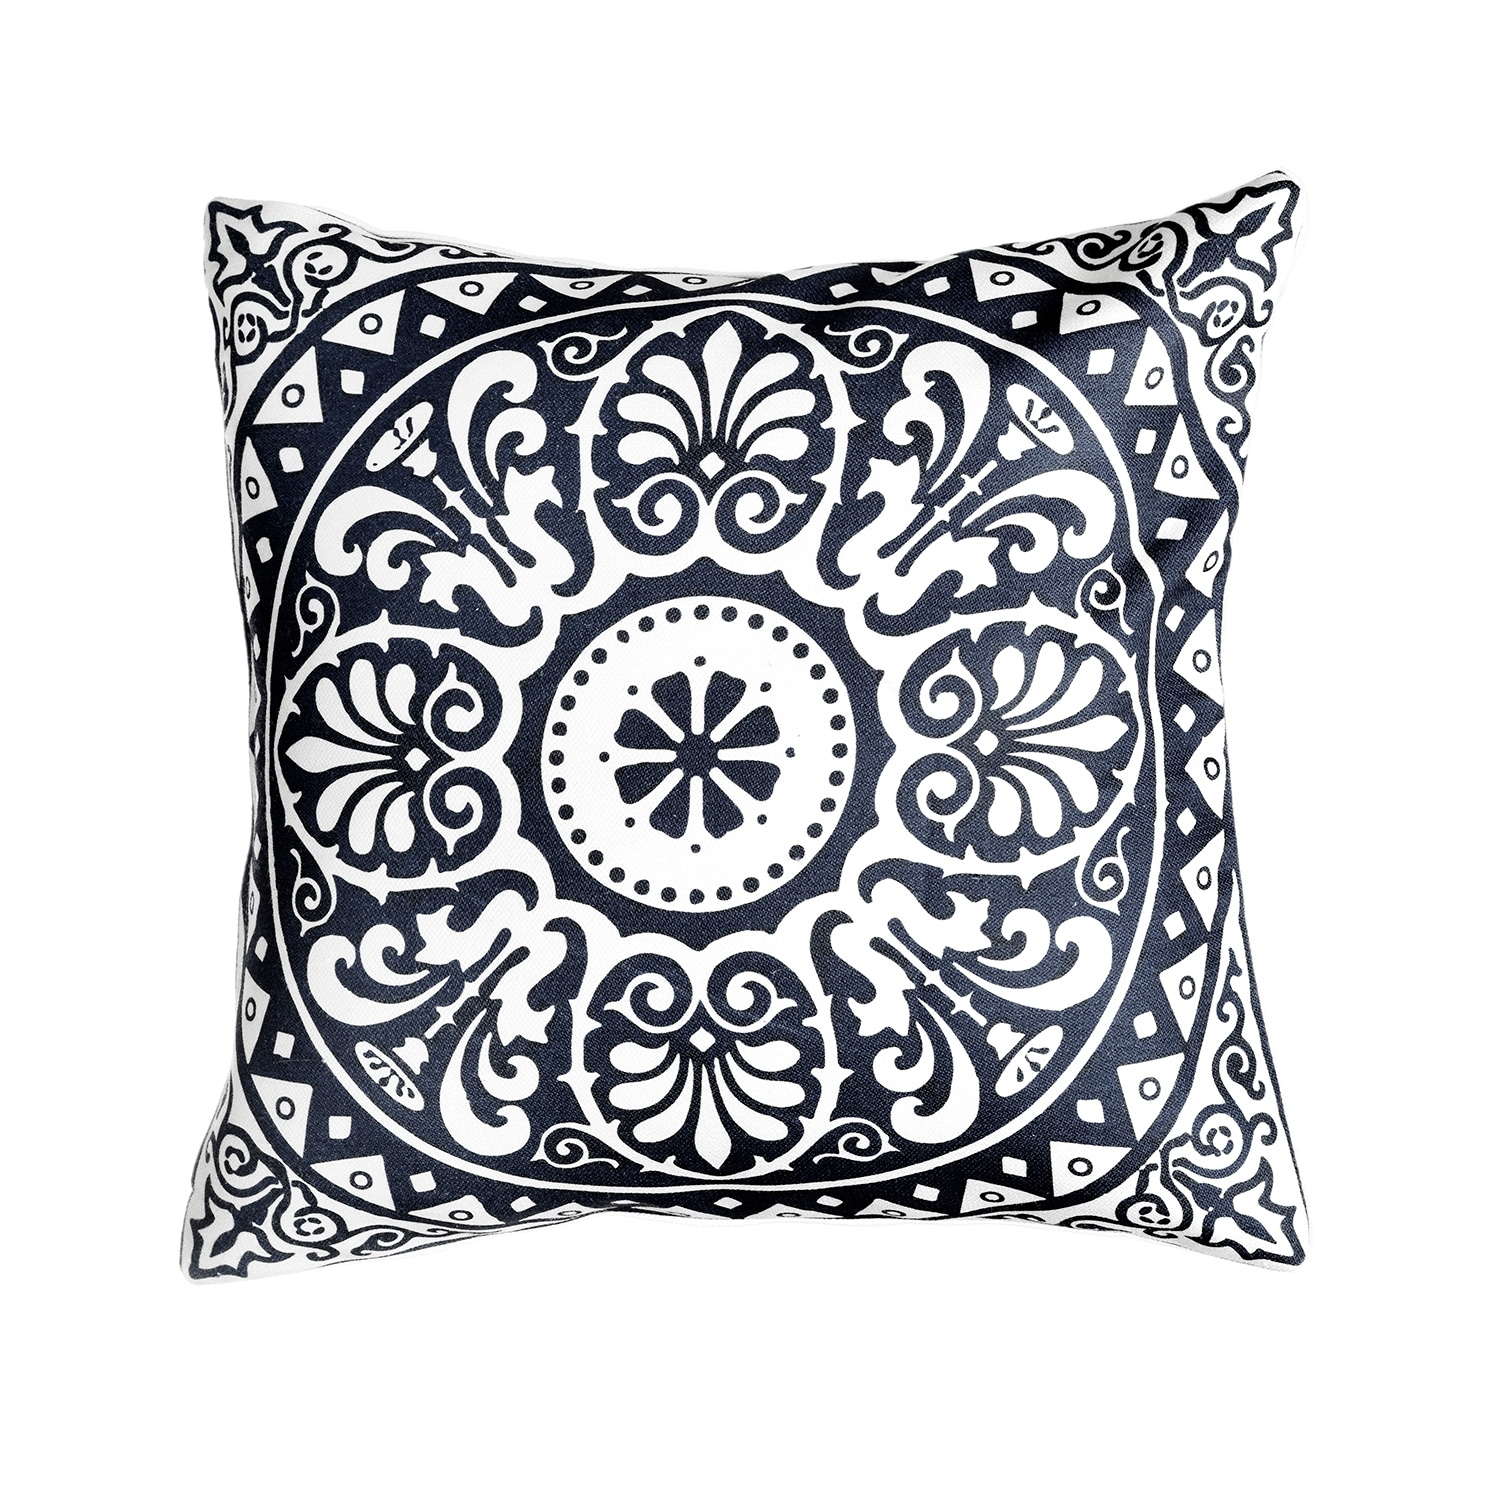 Spanish Tile Indoor Outdoor Decorative Pillow Navy Blue 20 X 20 Overstock 31312902